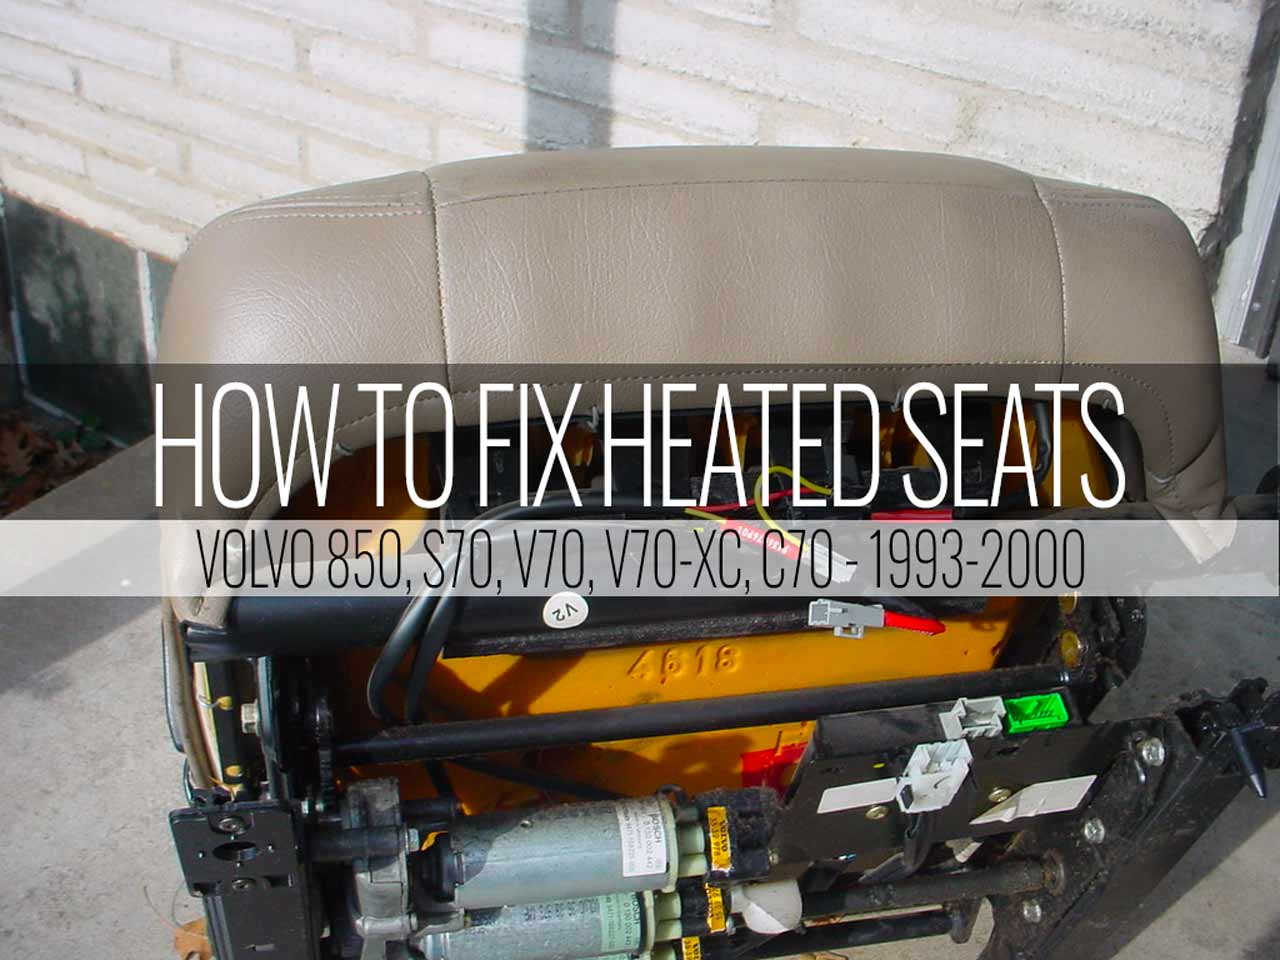 850 Heated Seat Not Working? Here's The Fix